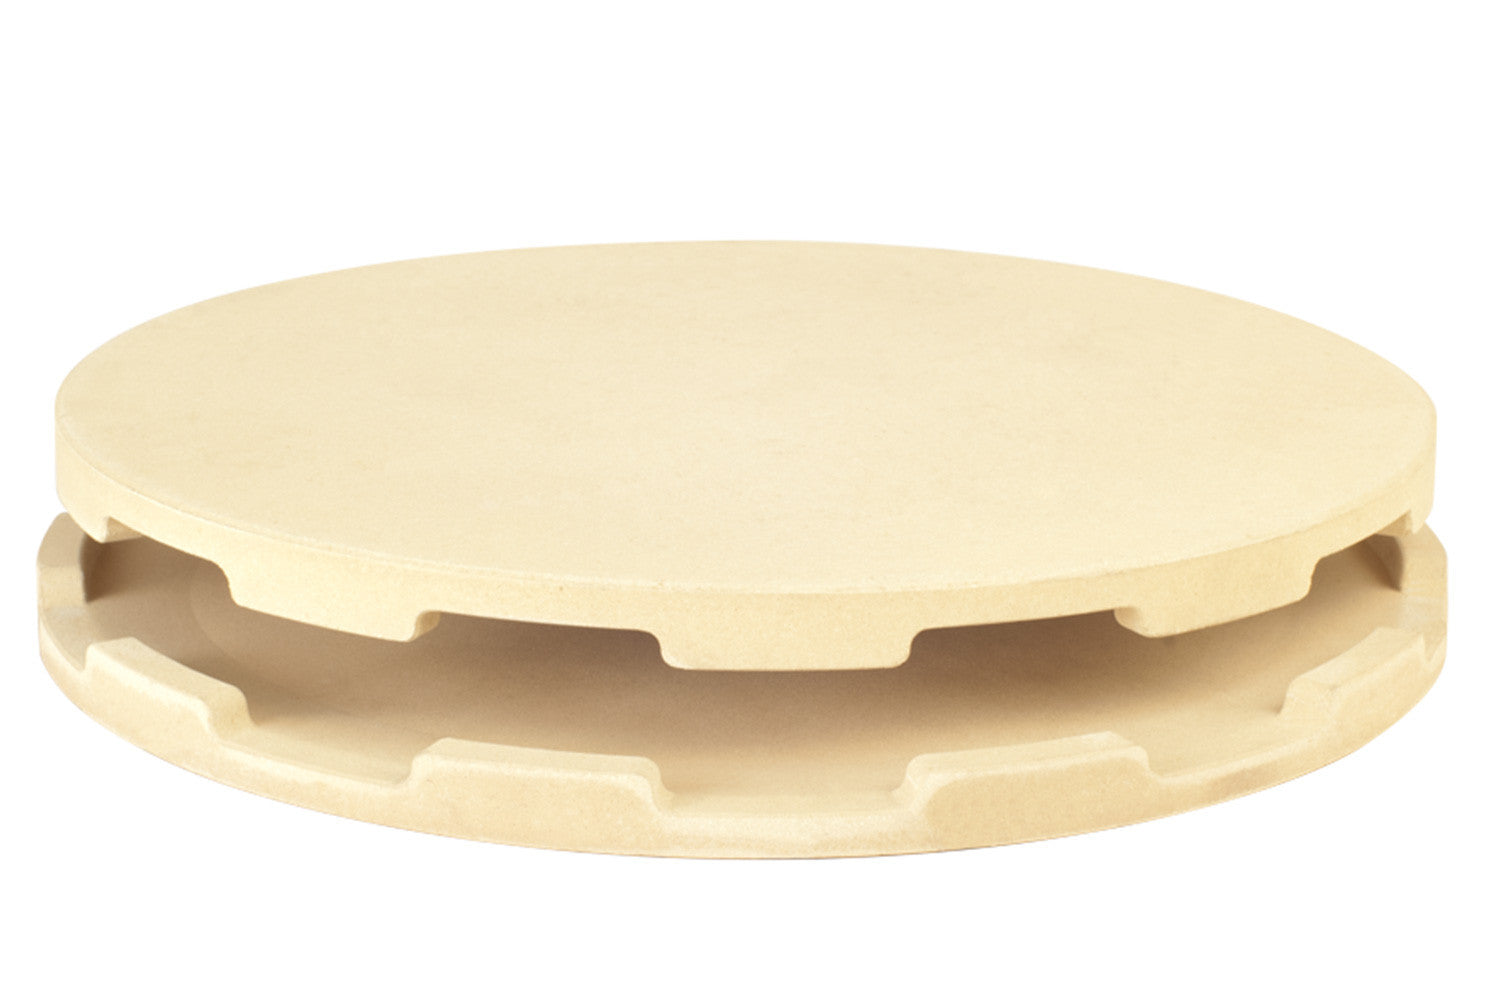 Bed bath beyond pizza stone - Perfect Pizza Grilling Stone Separated Baking Stones Of The Perfect Pizza Grilling Stone